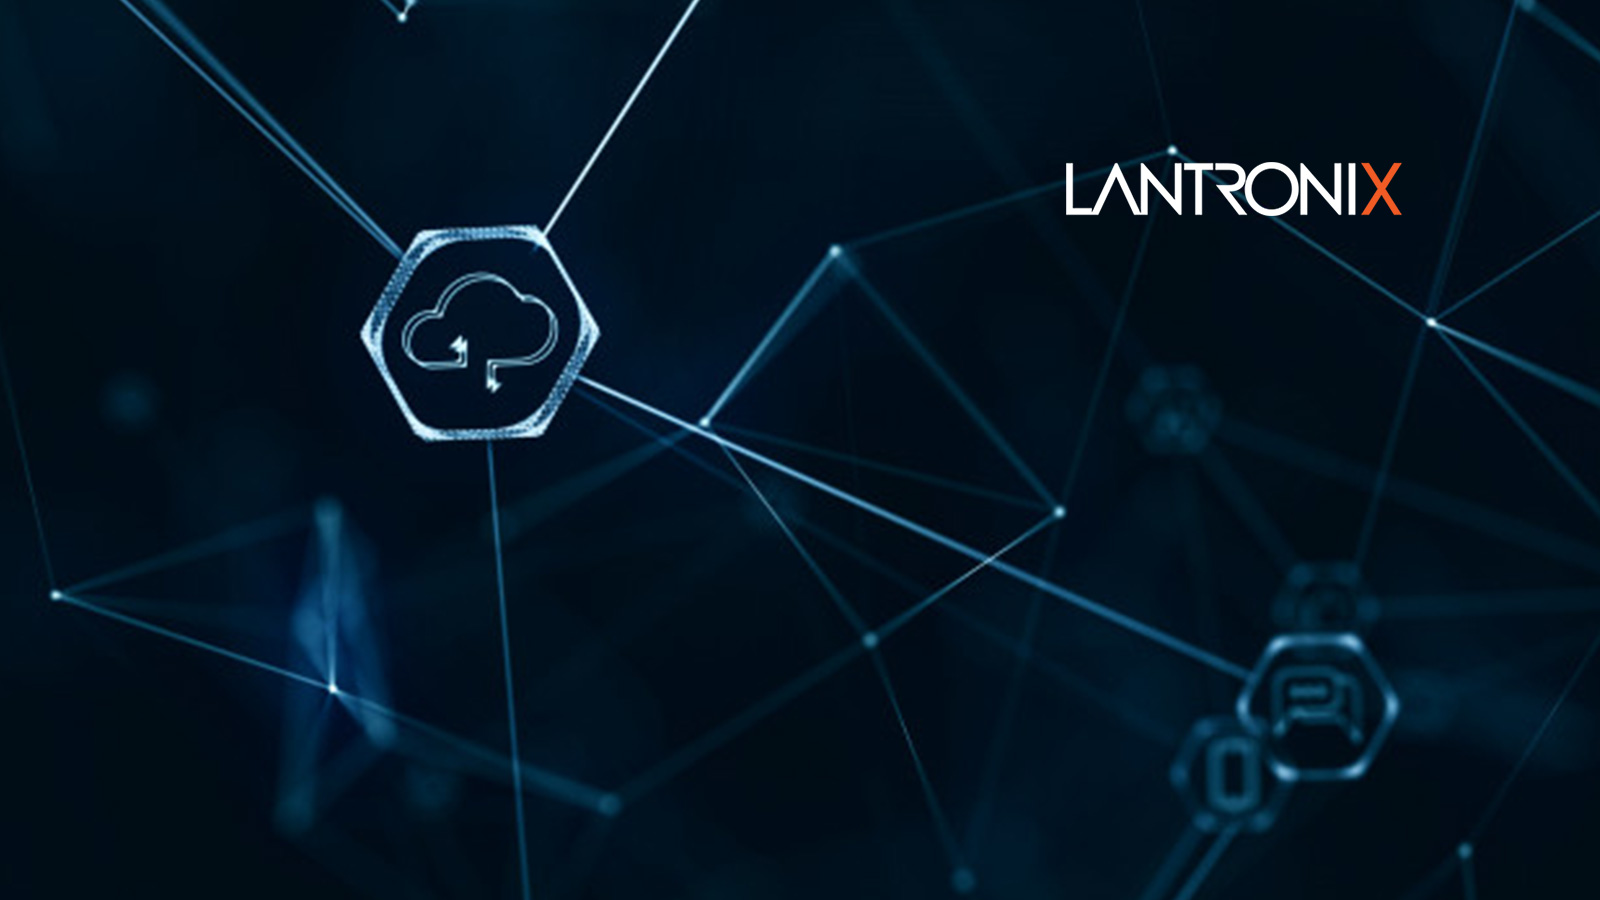 Lantronix to Showcase Scalable and Secure Out-Of-Band